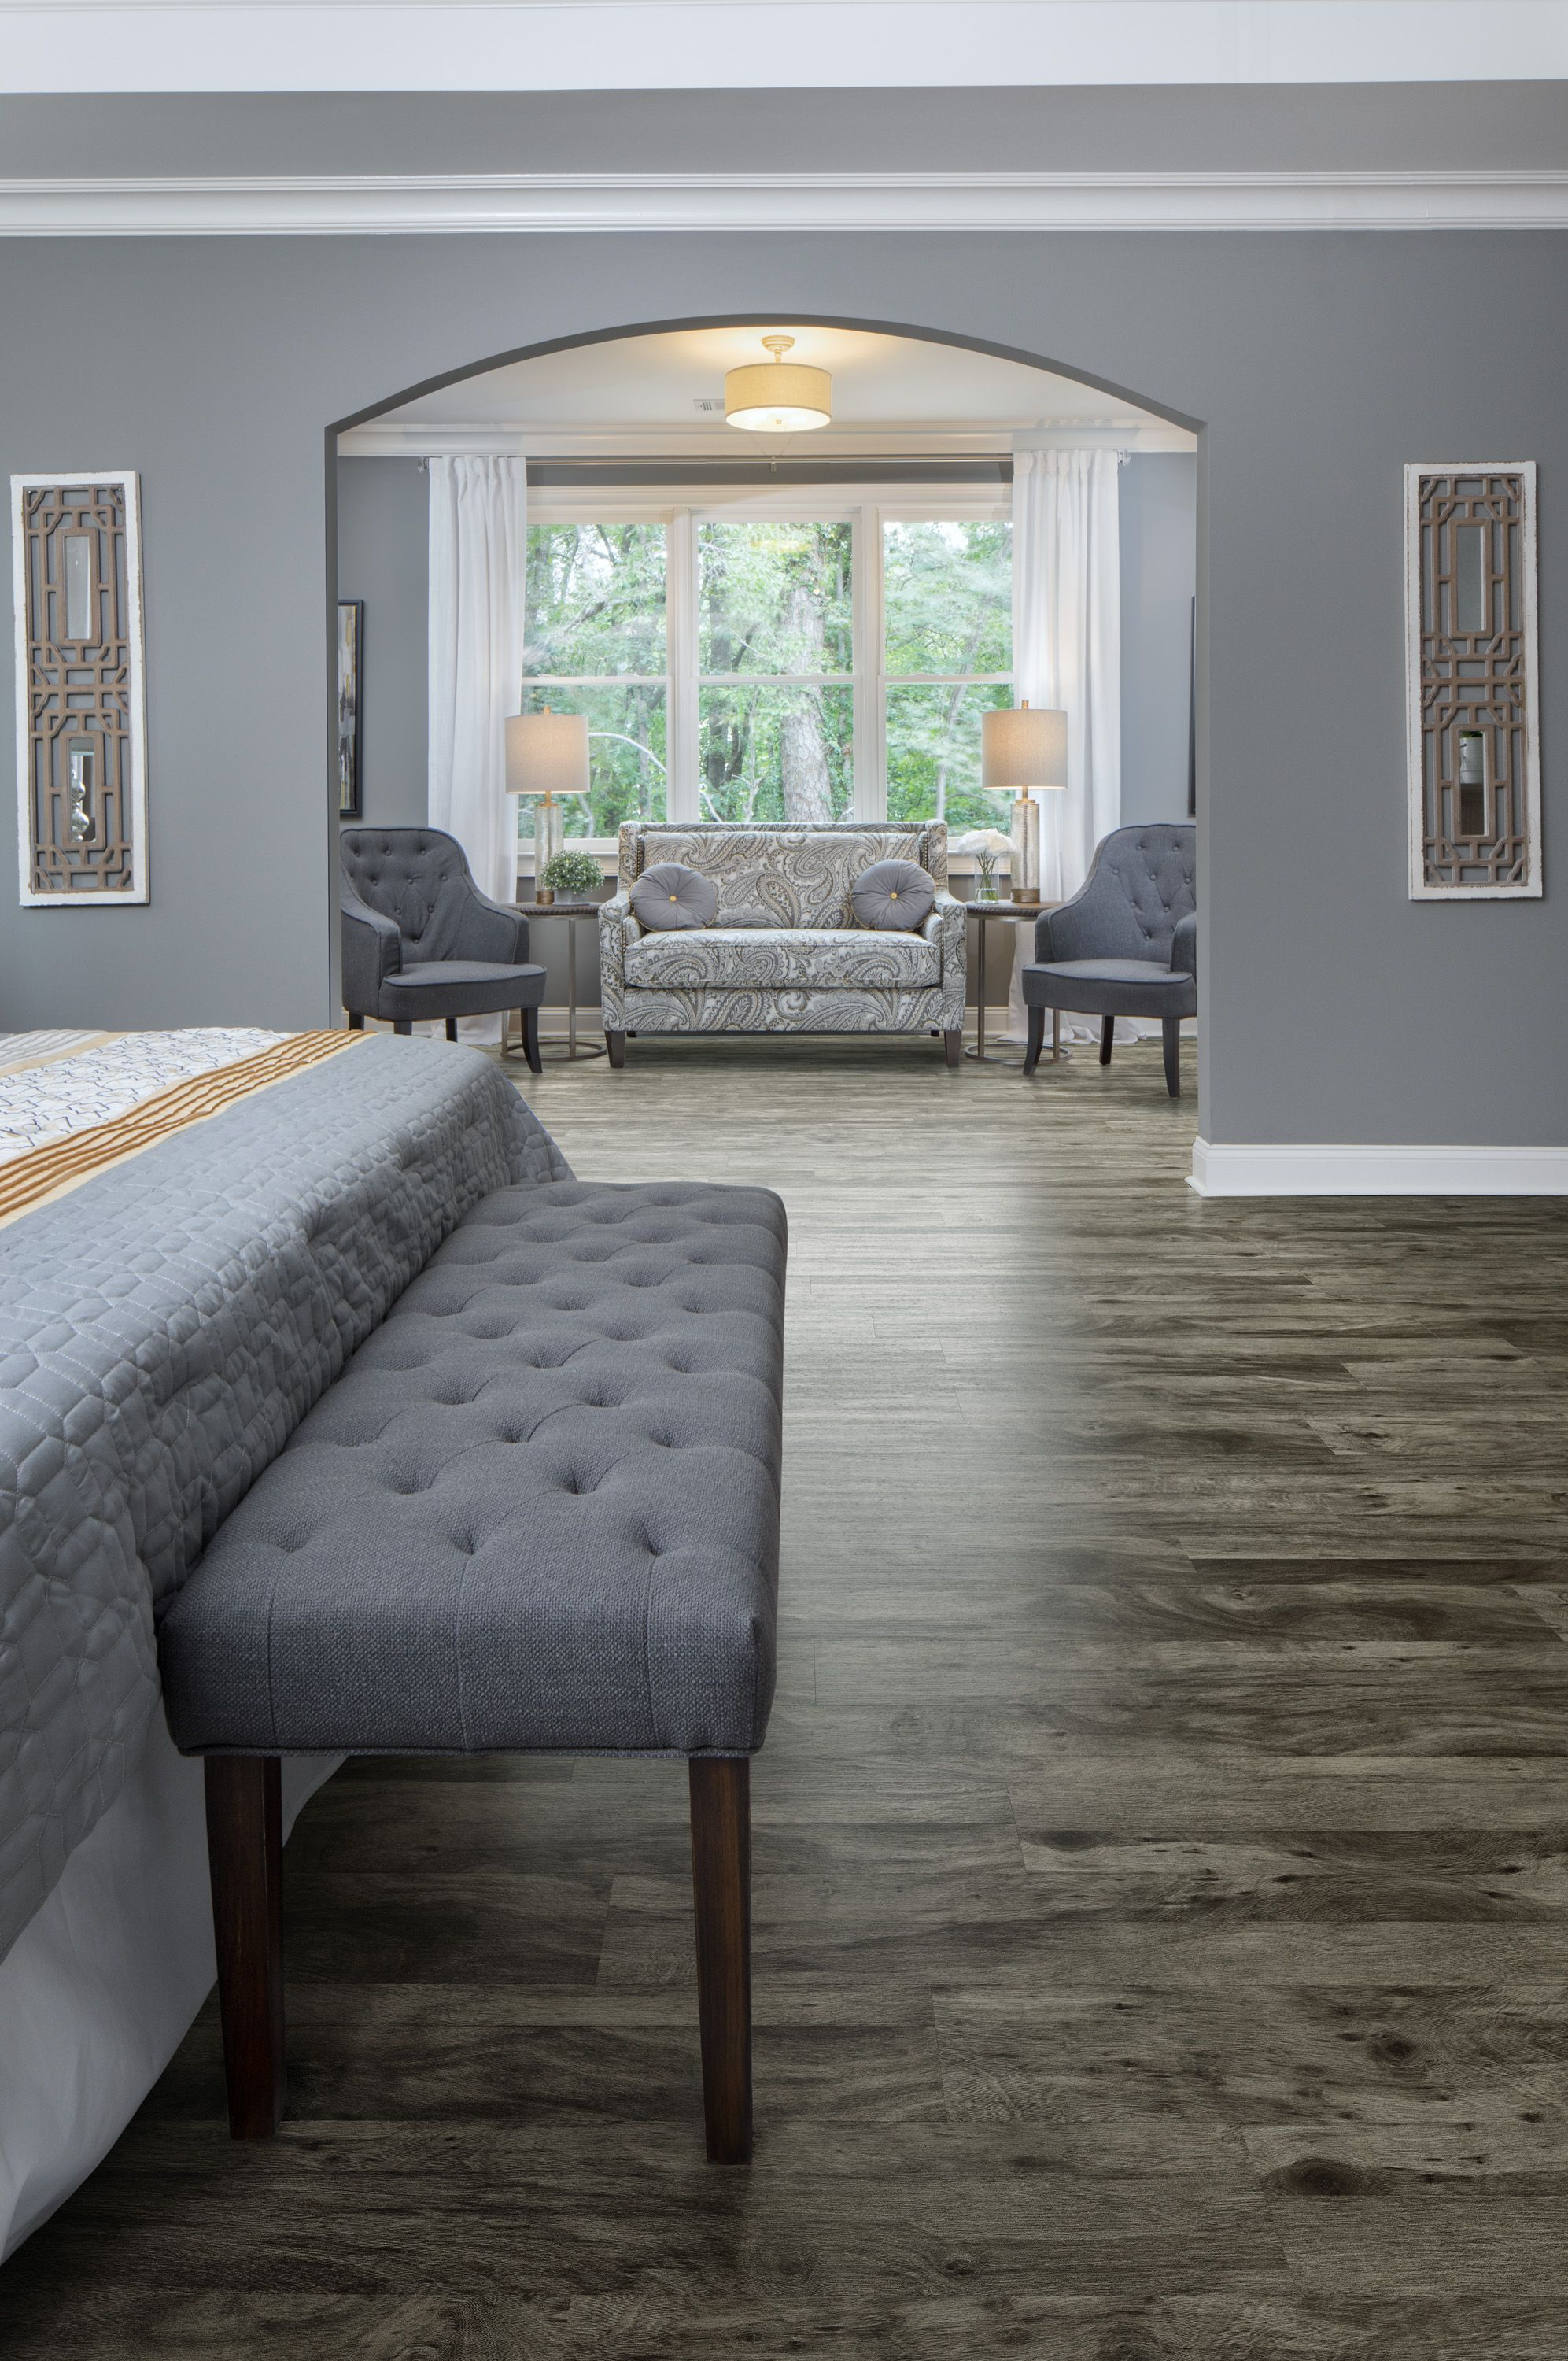 Customize Your Bedroom Floors Featuring Luxury Vinyl Plank And Tile Point Of View From Our Design Mix Floorin Vinyl Flooring Custom Floor Design Floor Design